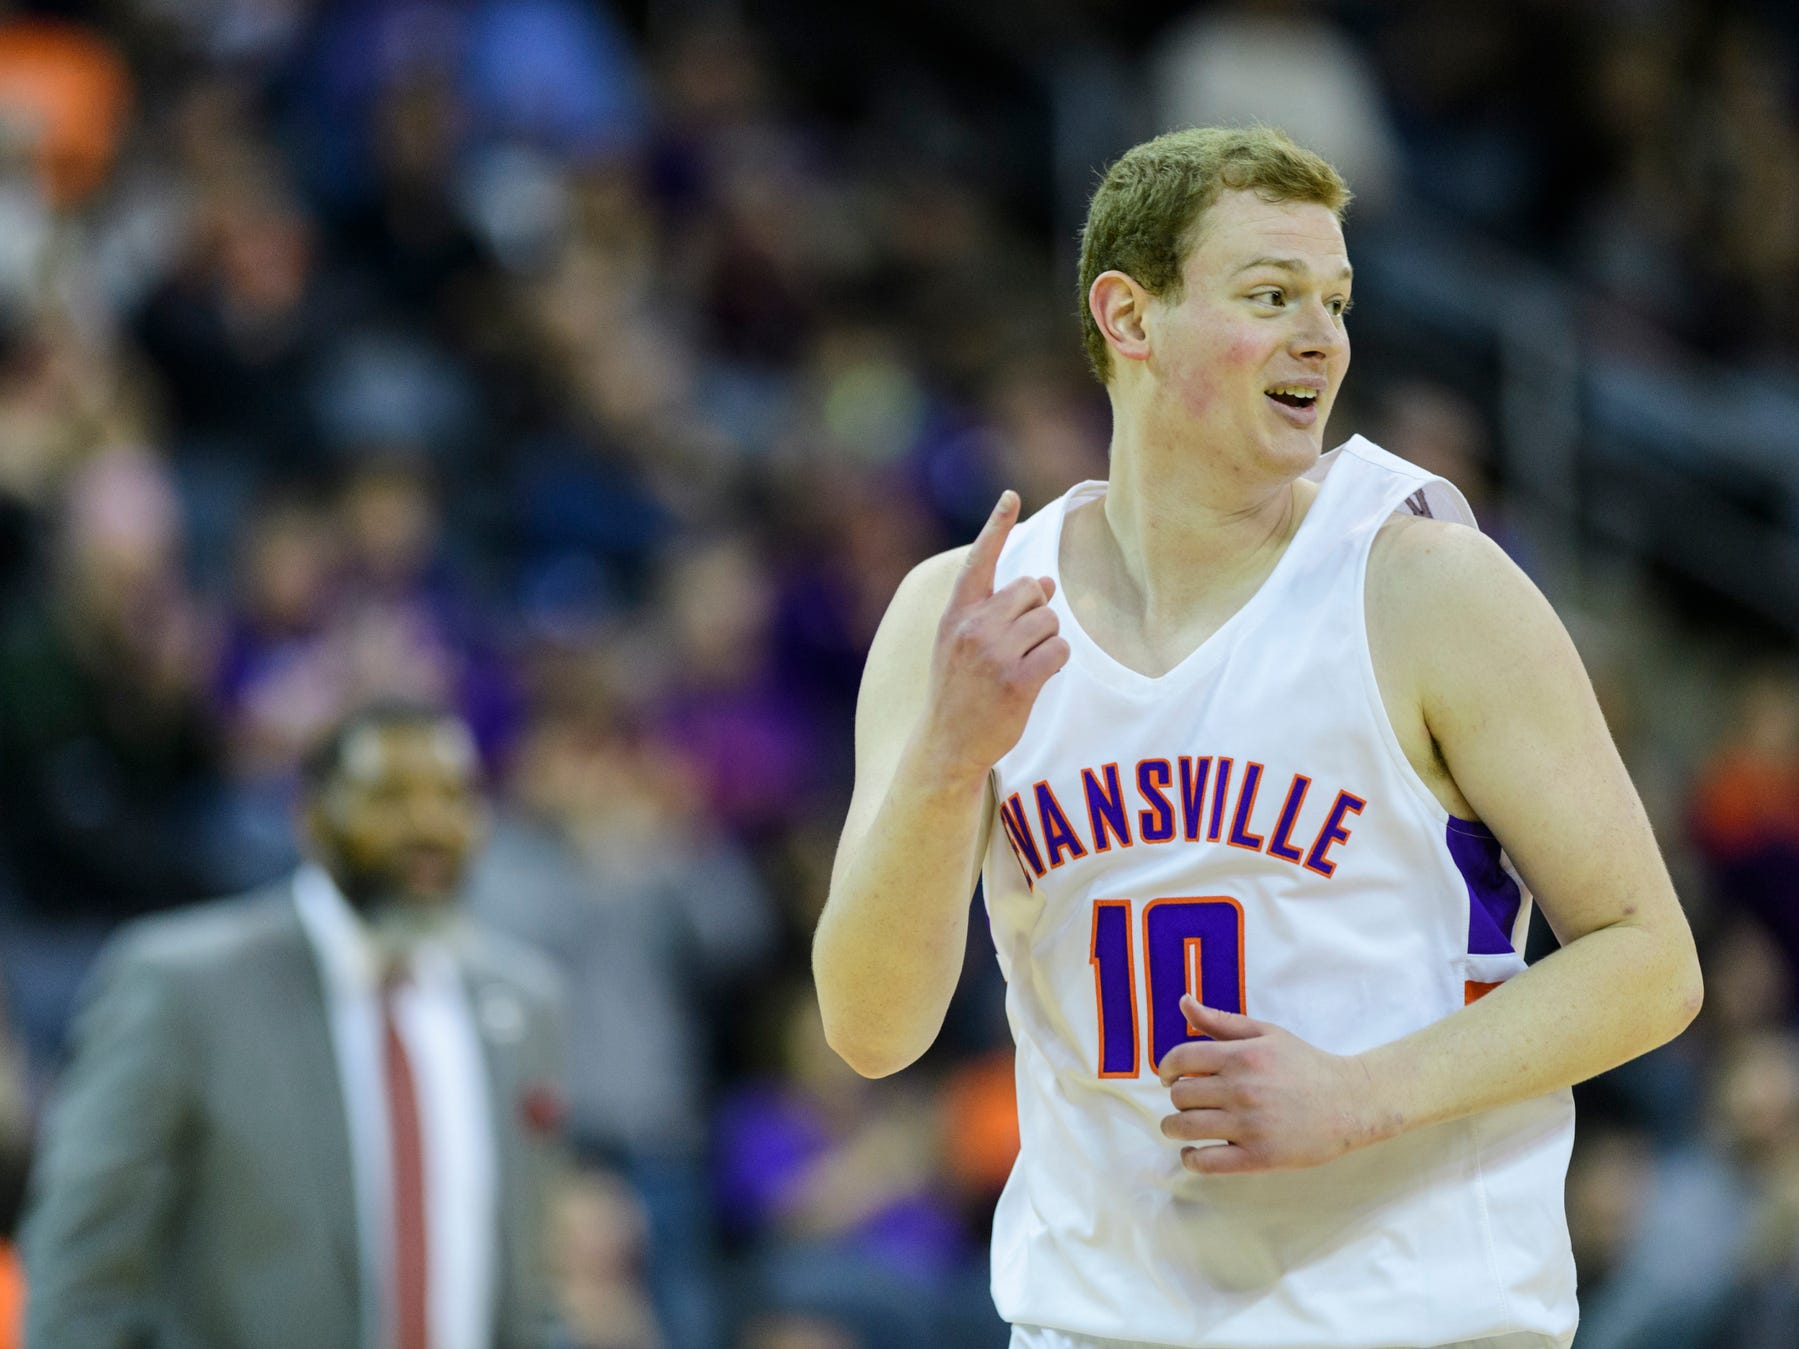 University of Evansville's Evan Kuhlman (10) reacts to his team's 80-75 win over the University of Wisconsin-Green Bay Phoenix at Ford Center in Evansville, Ind., Saturday, Dec. 22, 2018.